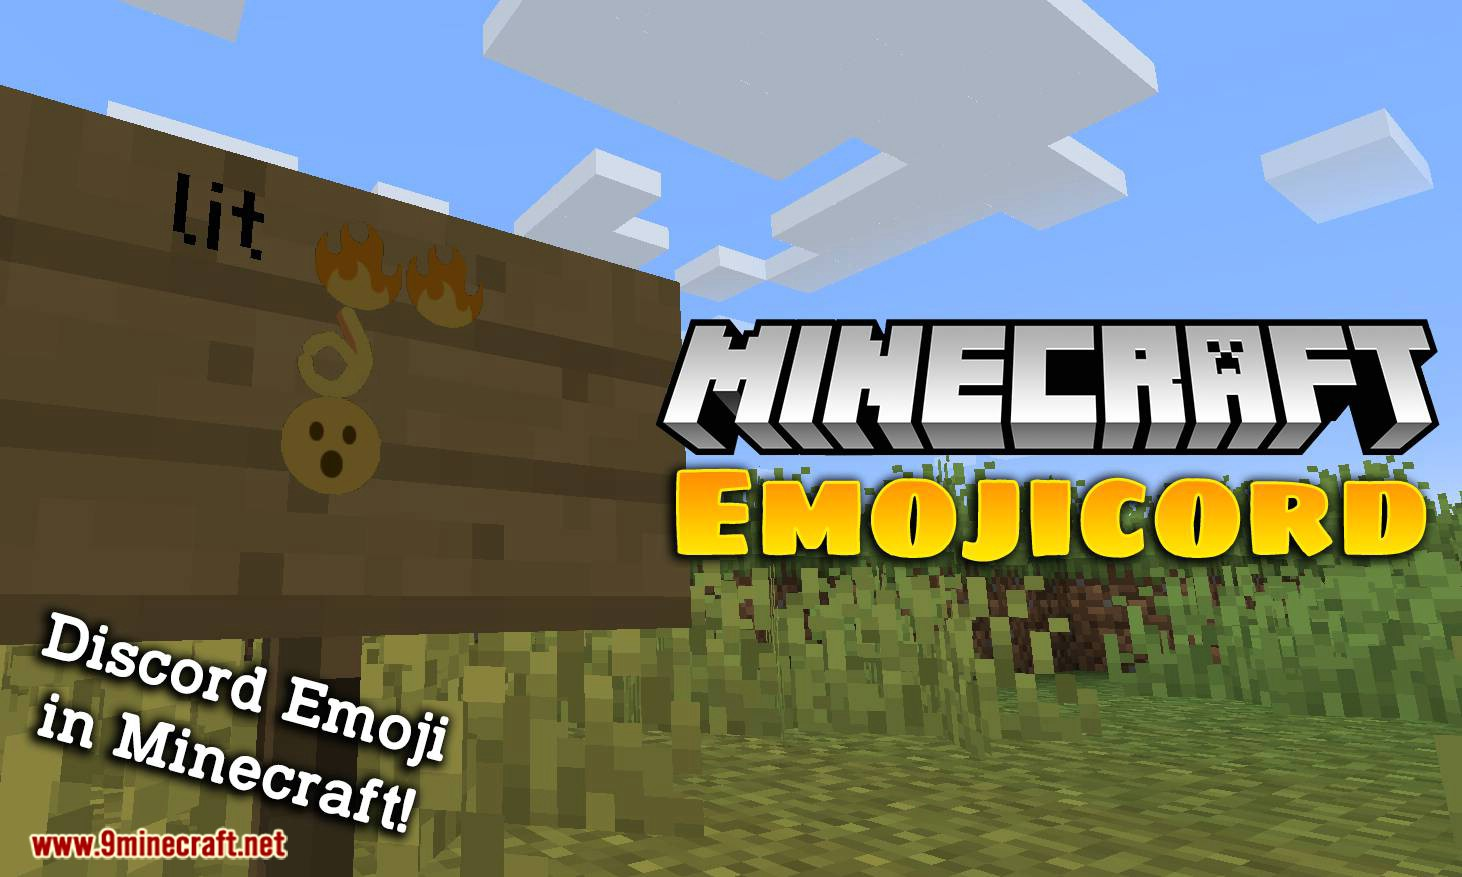 Emojicord mod for minecraft logo